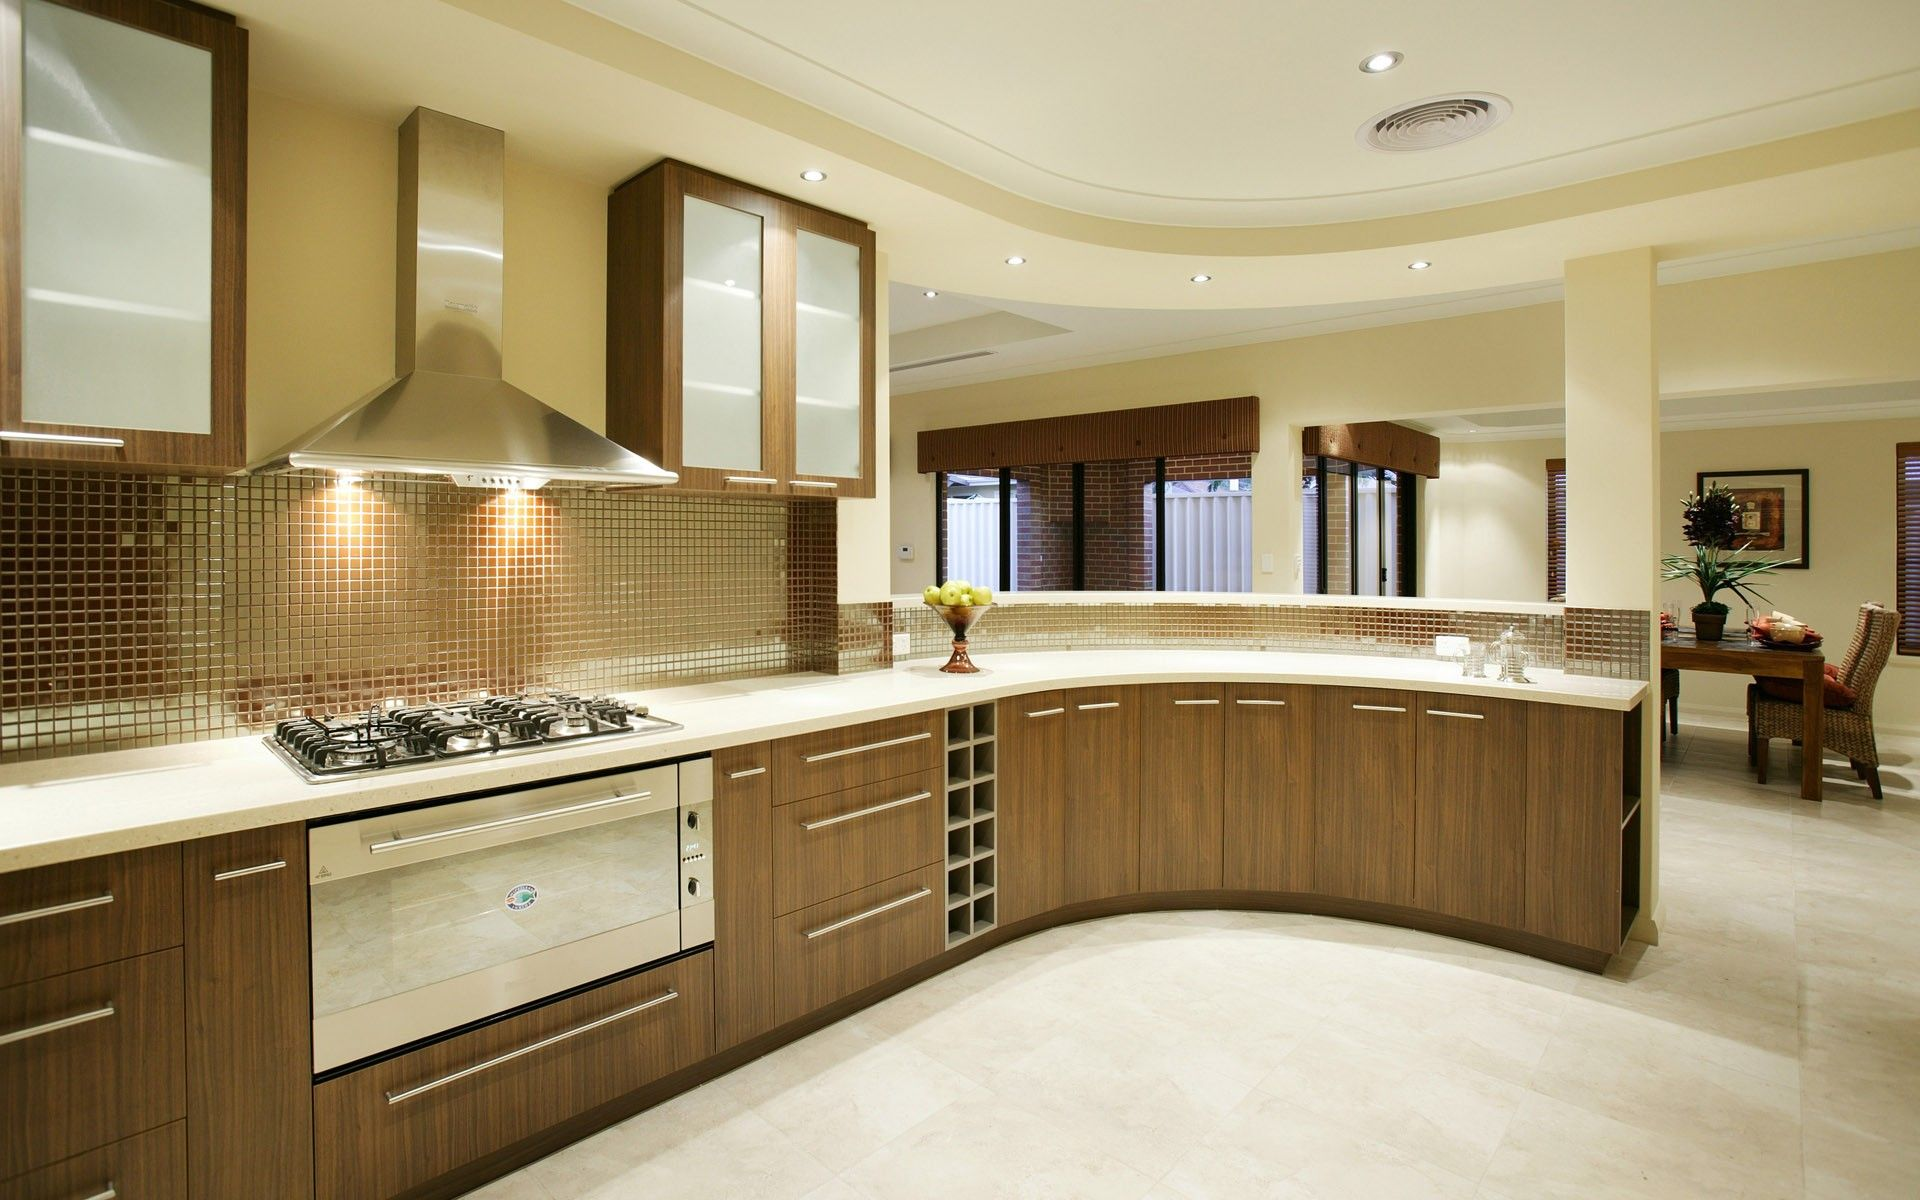 Points To Consider While Planning For Kitchen Interior Design Kitchen  Interior Design âu20acu201c Homedee